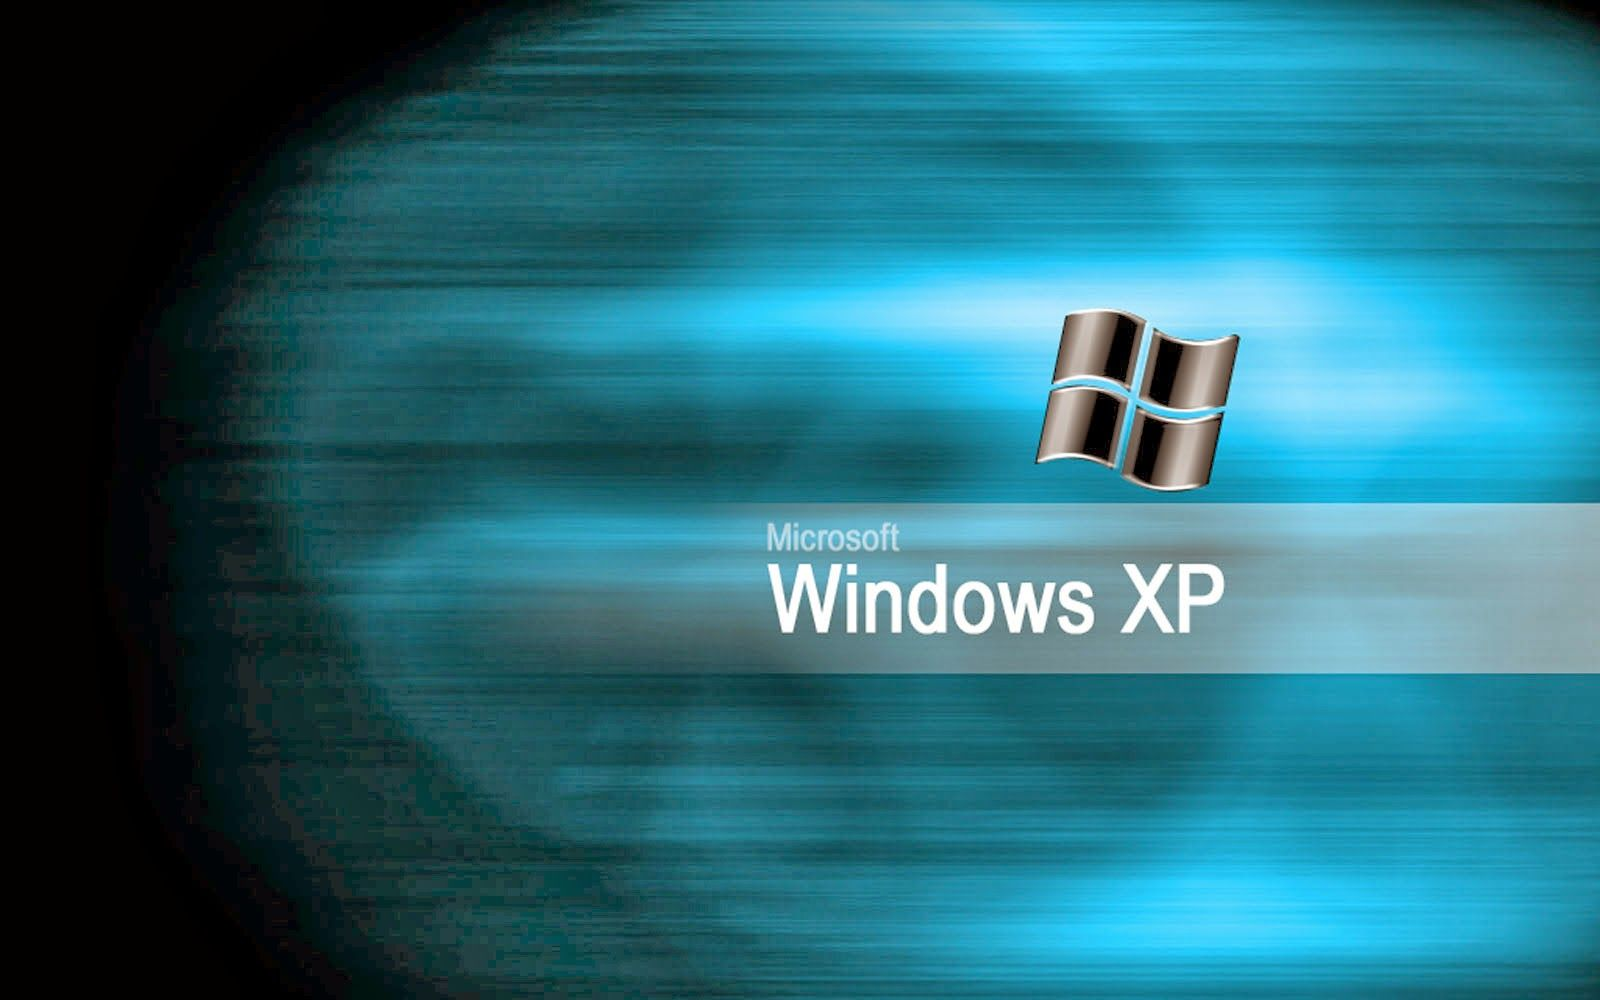 Windows Xp Wallpapers Group Windows Xp Logo Desktop Background 136357 Hd Wallpaper Backgrounds Download